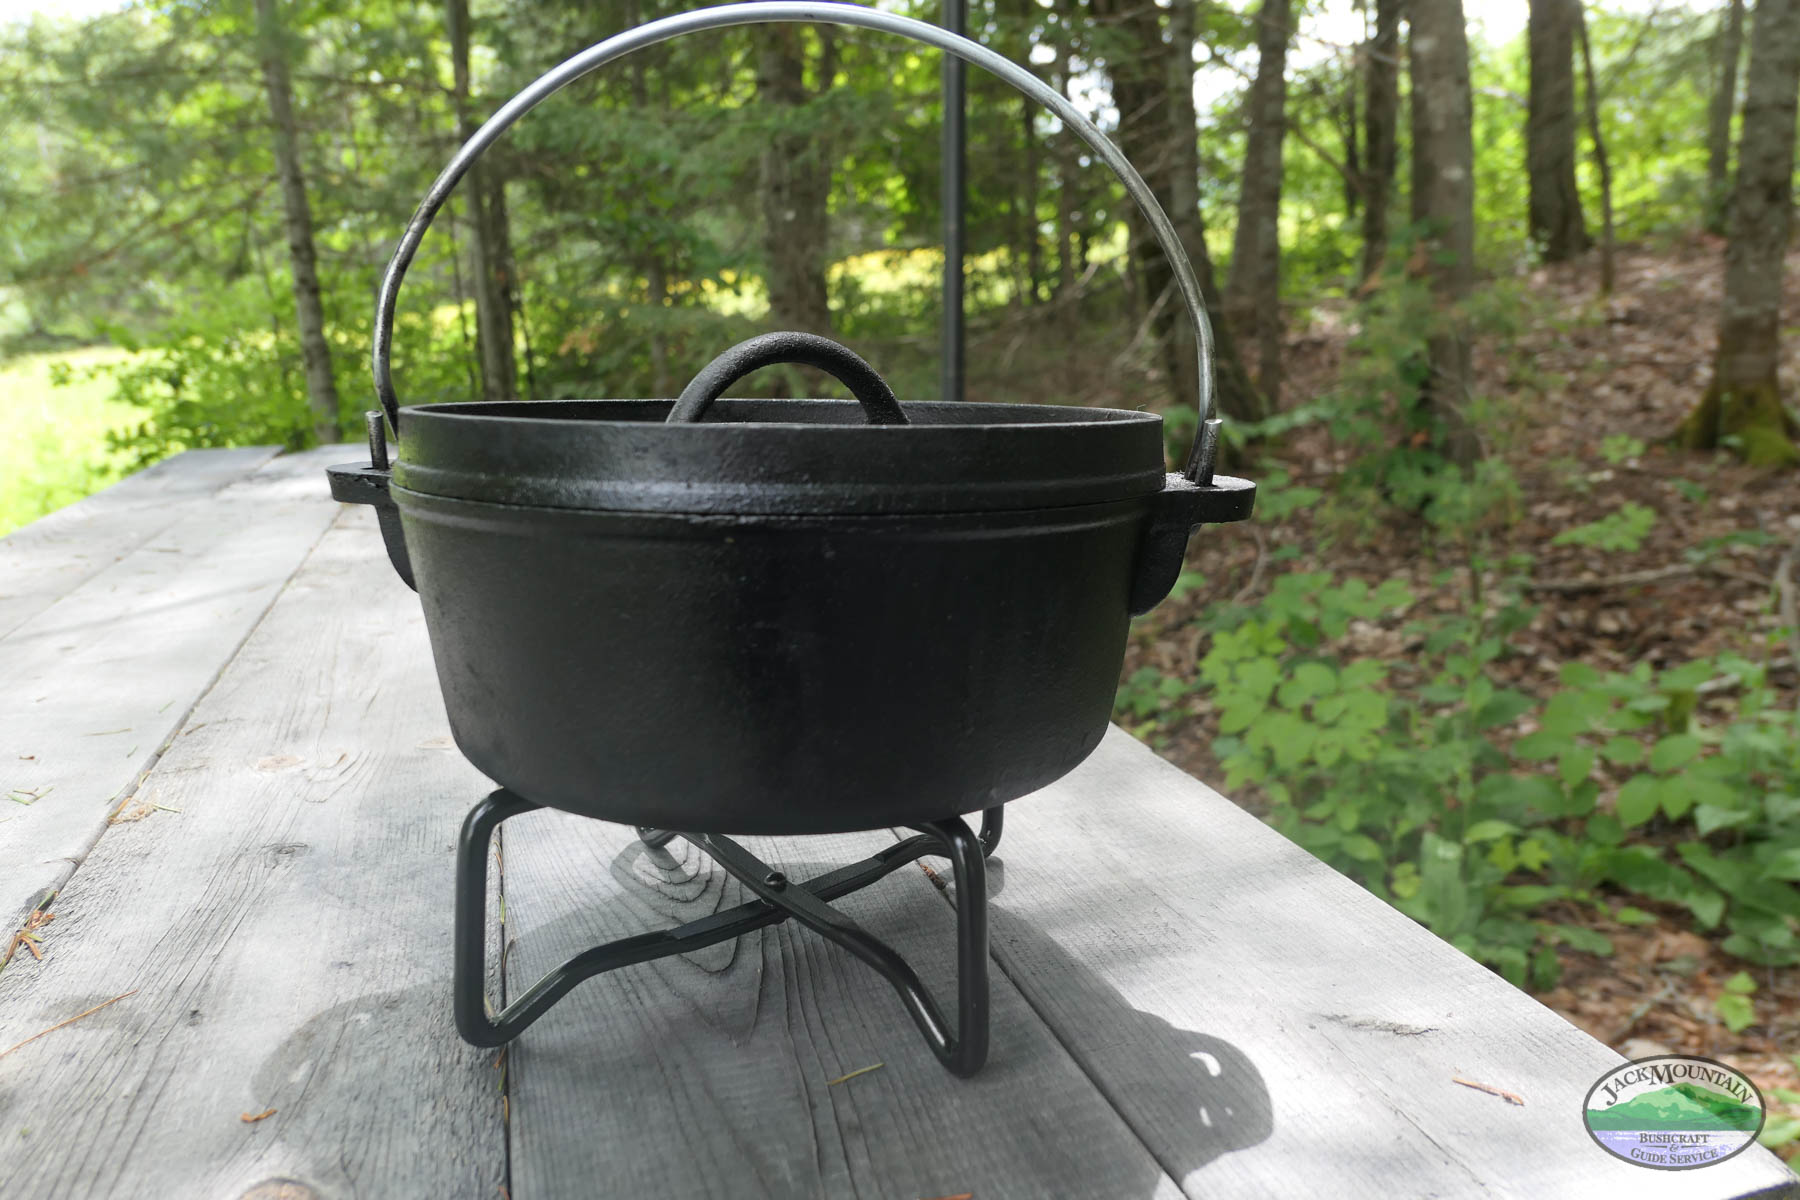 New Dutch Oven Recommendation For The Field School And The Home Kitchen